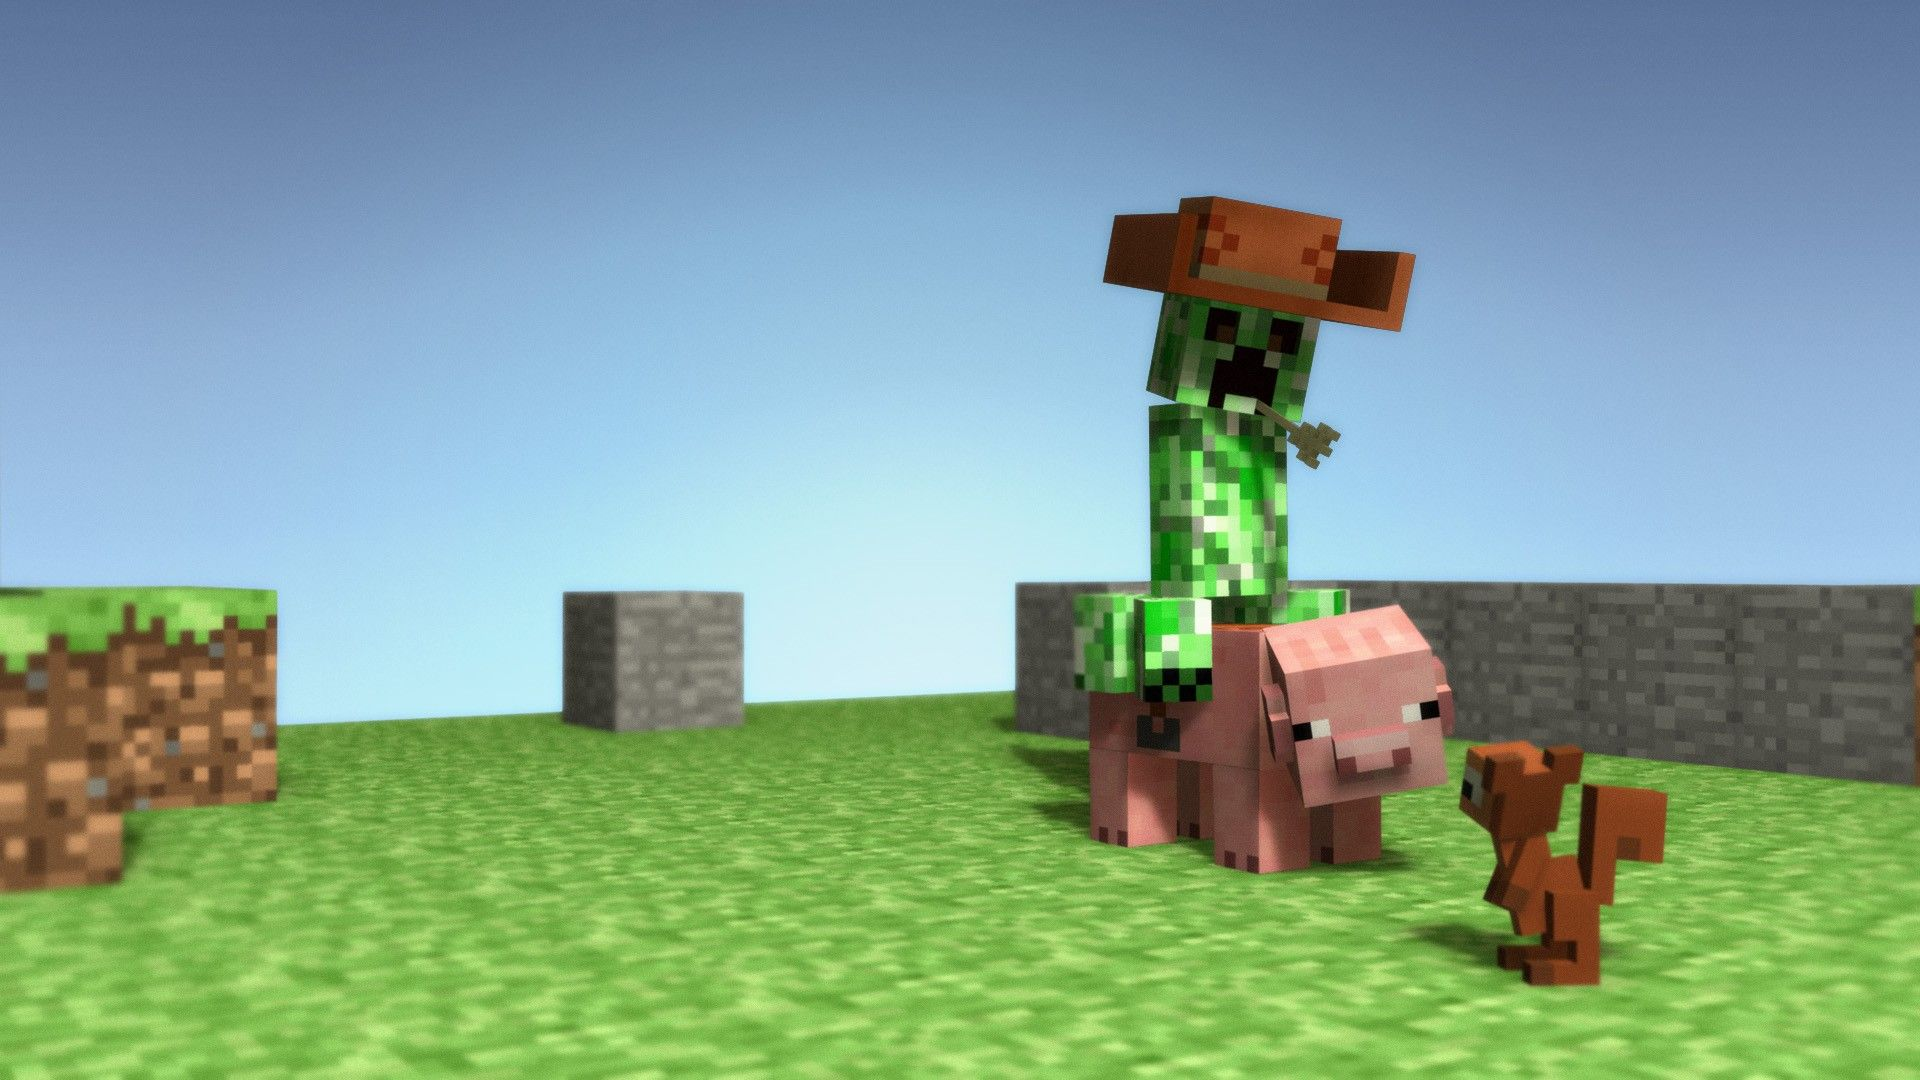 Creeper CowBoy Wallpaper Image